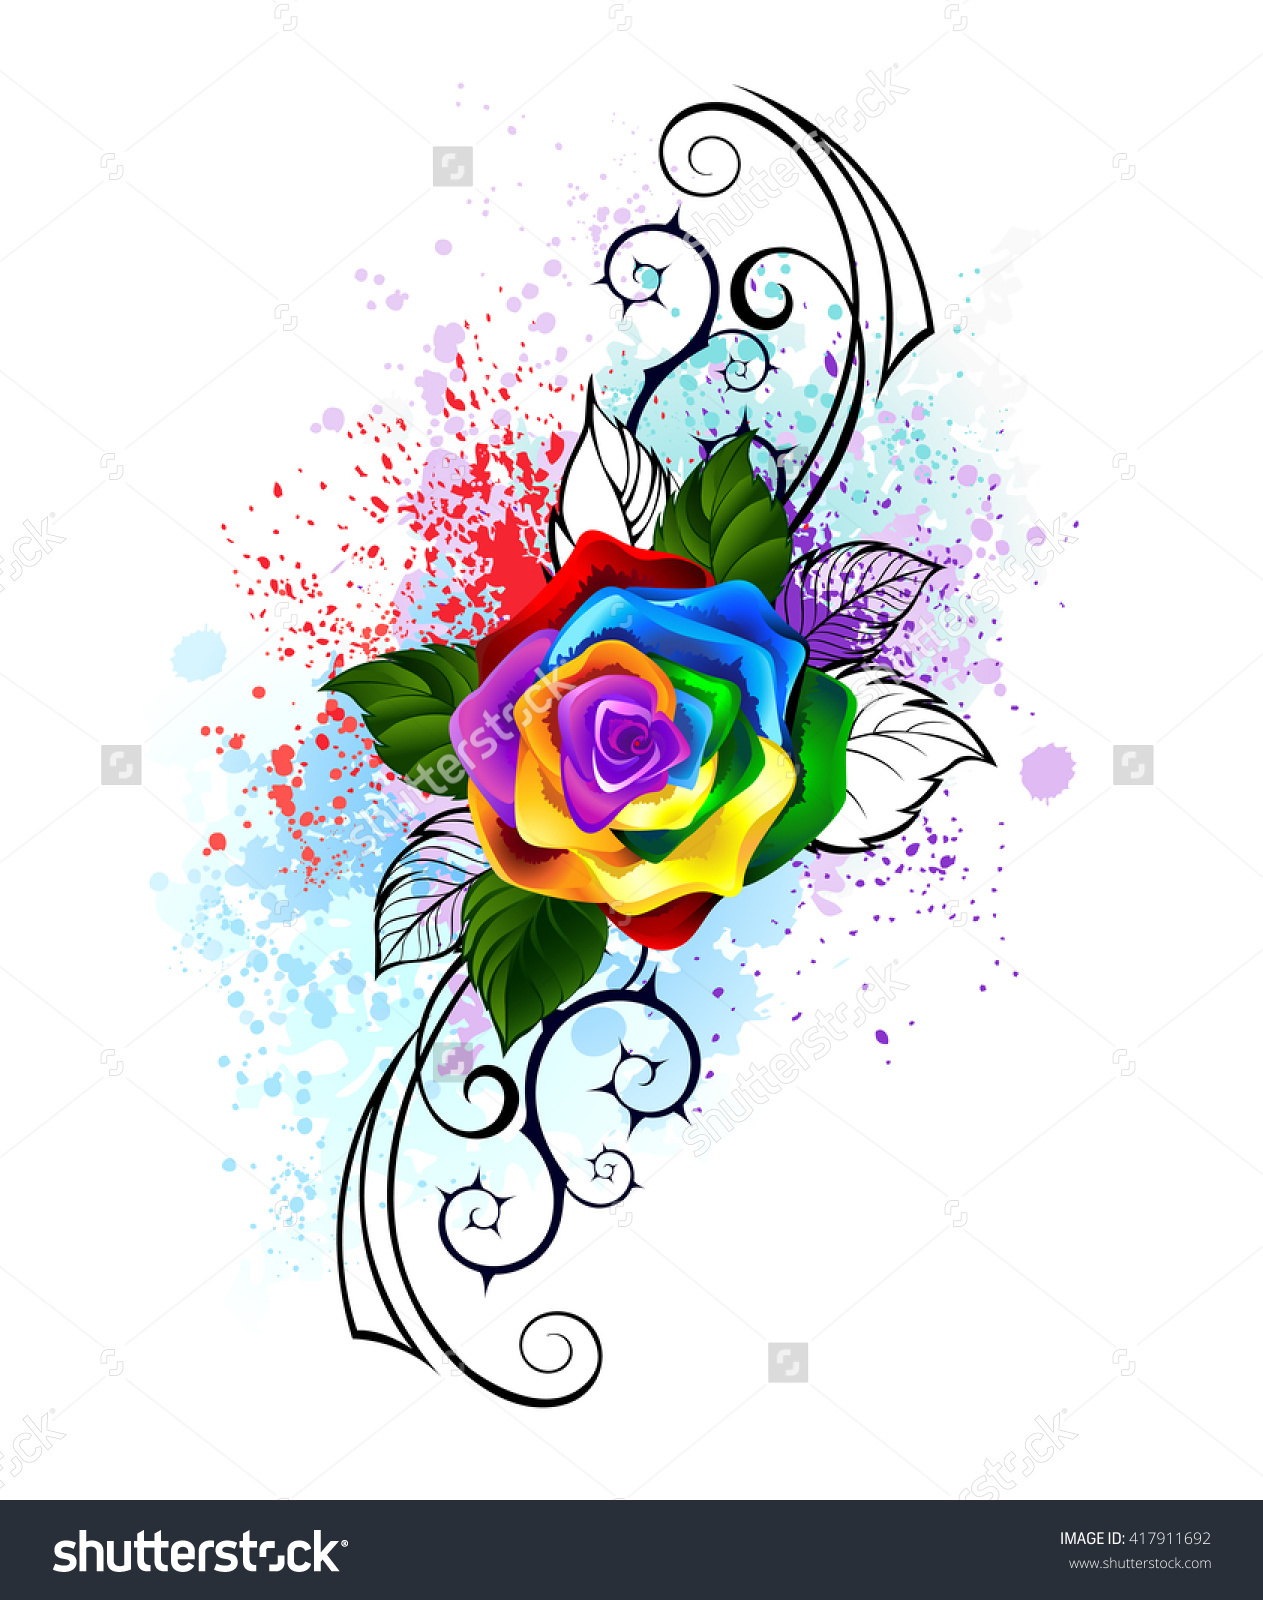 Bright Rainbow Rose Spiked Pattern On Stock Illustration 417911692.